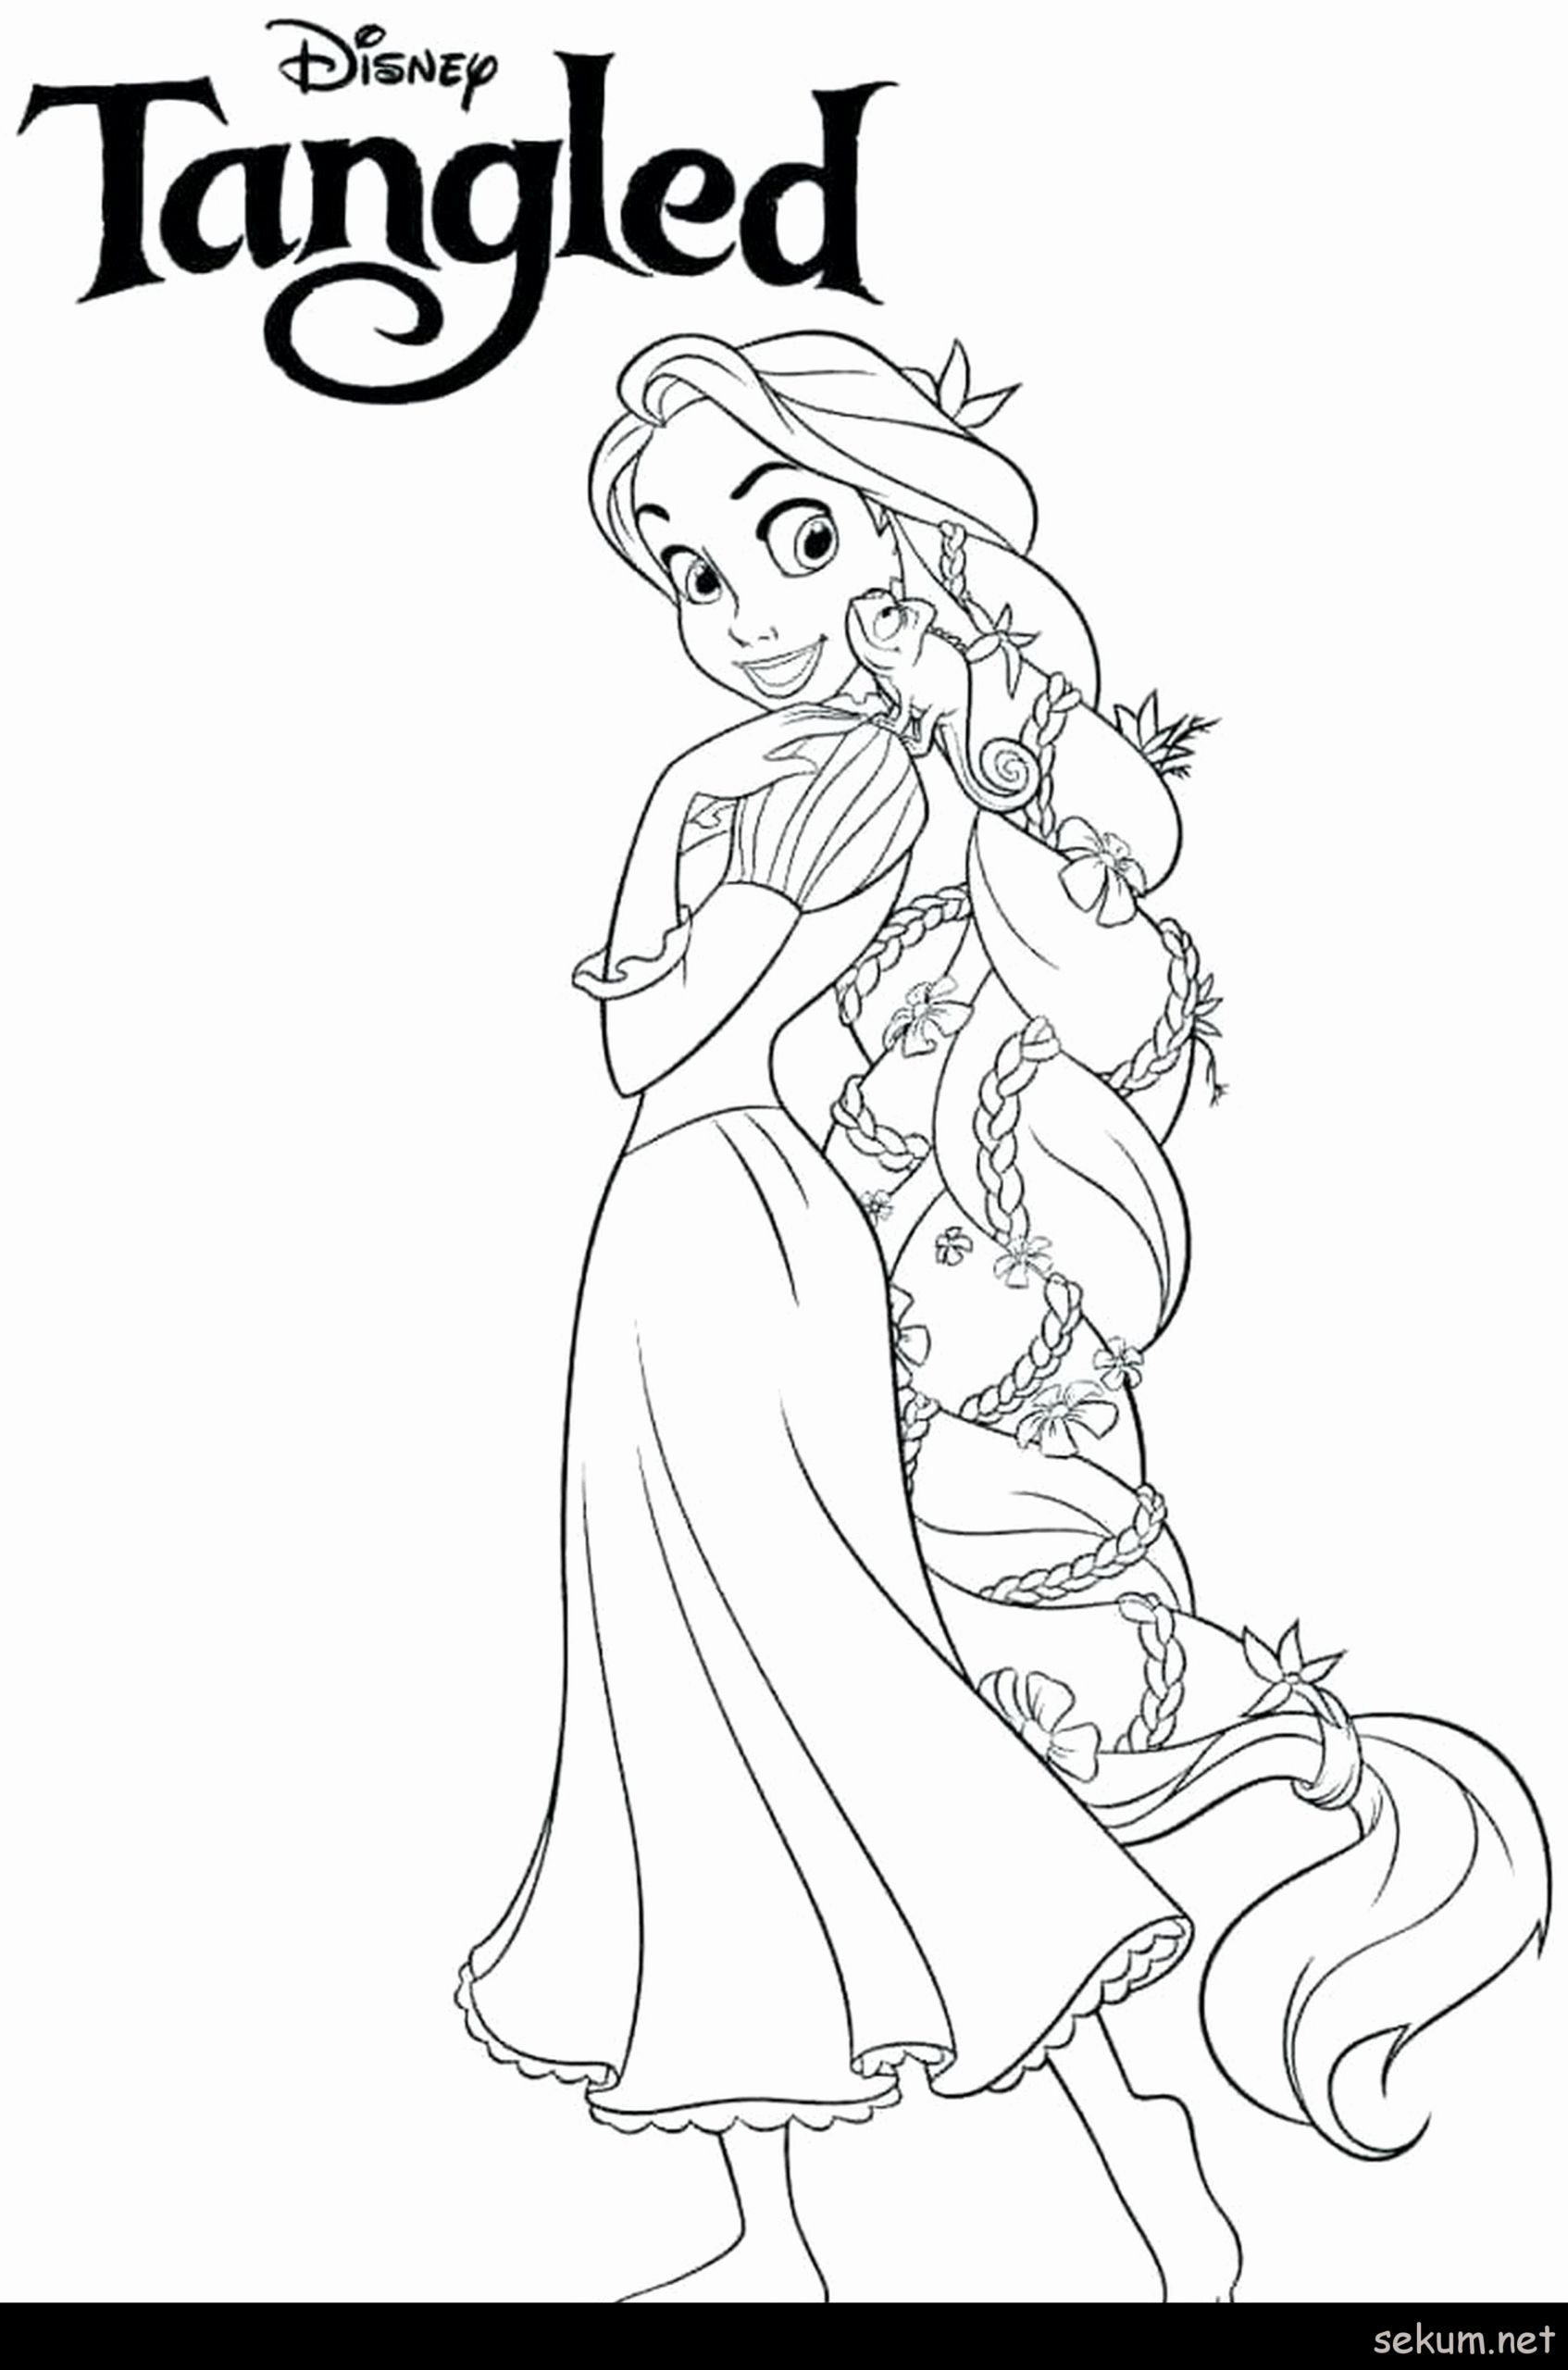 Kids Printable Disney Coloring Pages Tangled Coloring Pages Disney Coloring Sheets Disney Coloring Pages